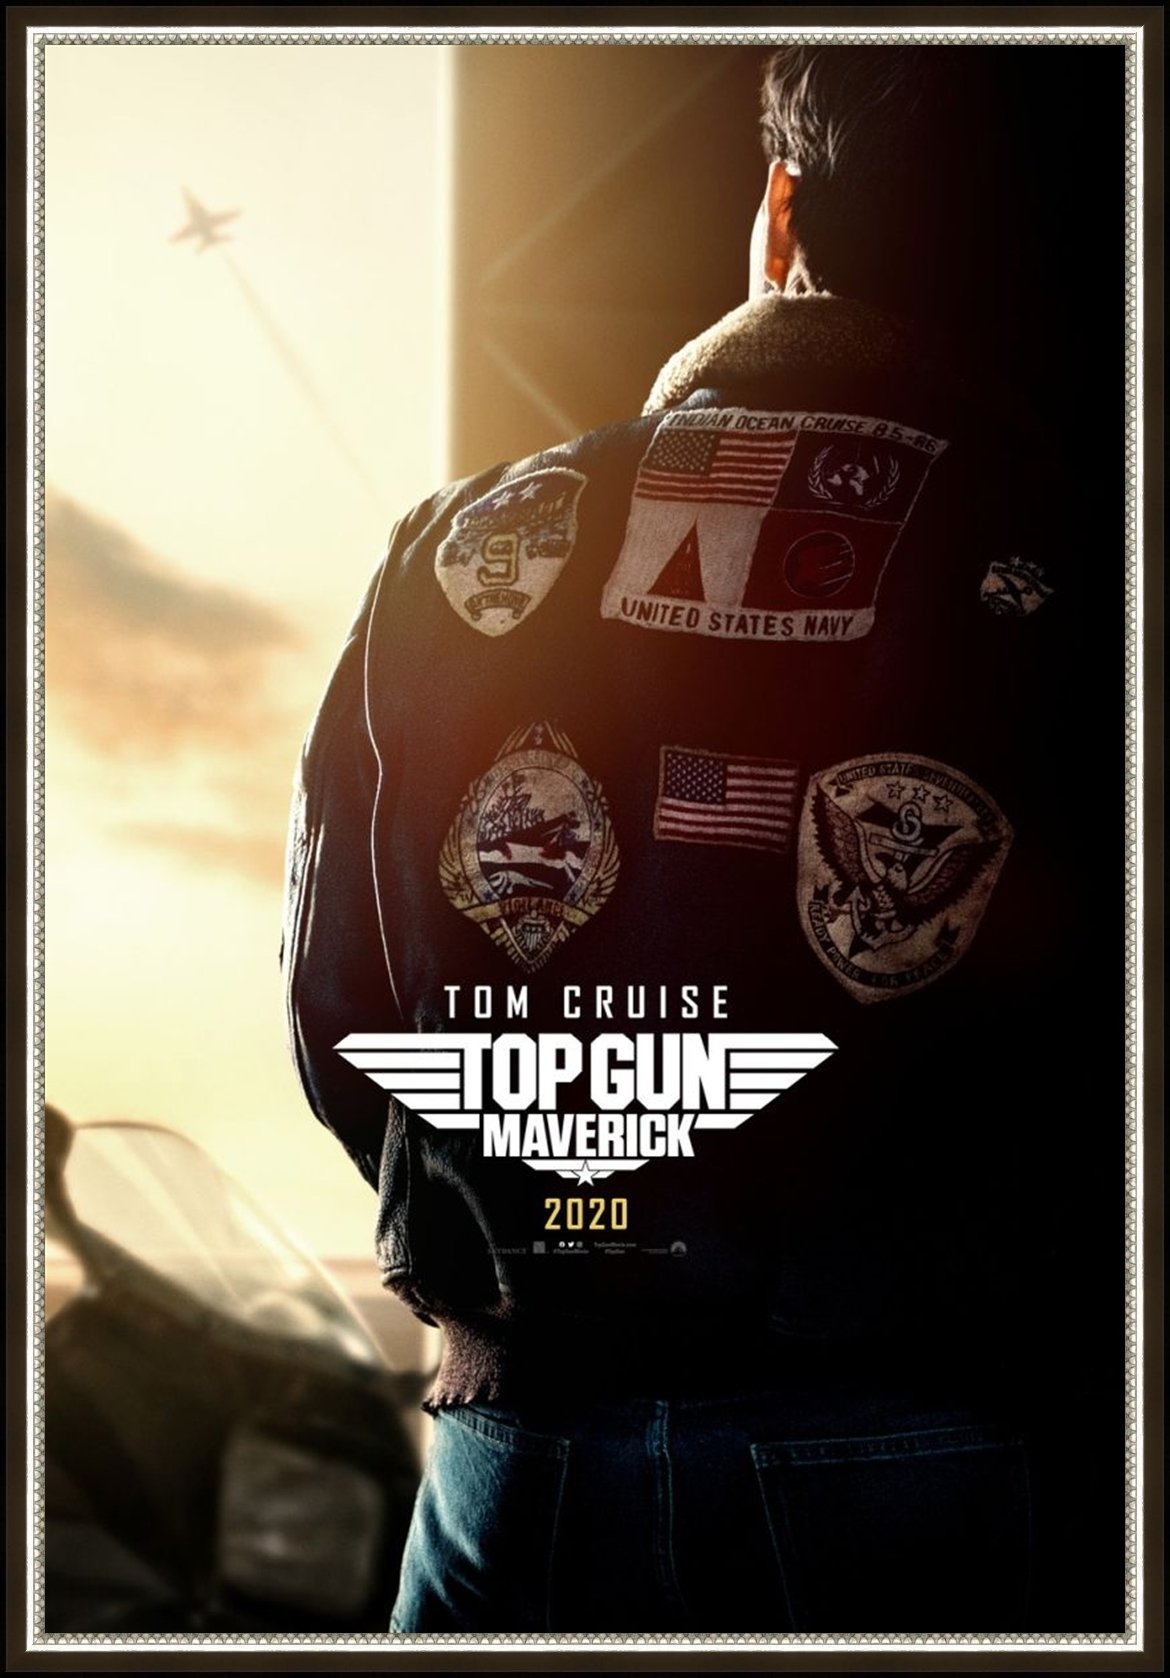 An original movie poster for the film Maverick (Top Gun 2)